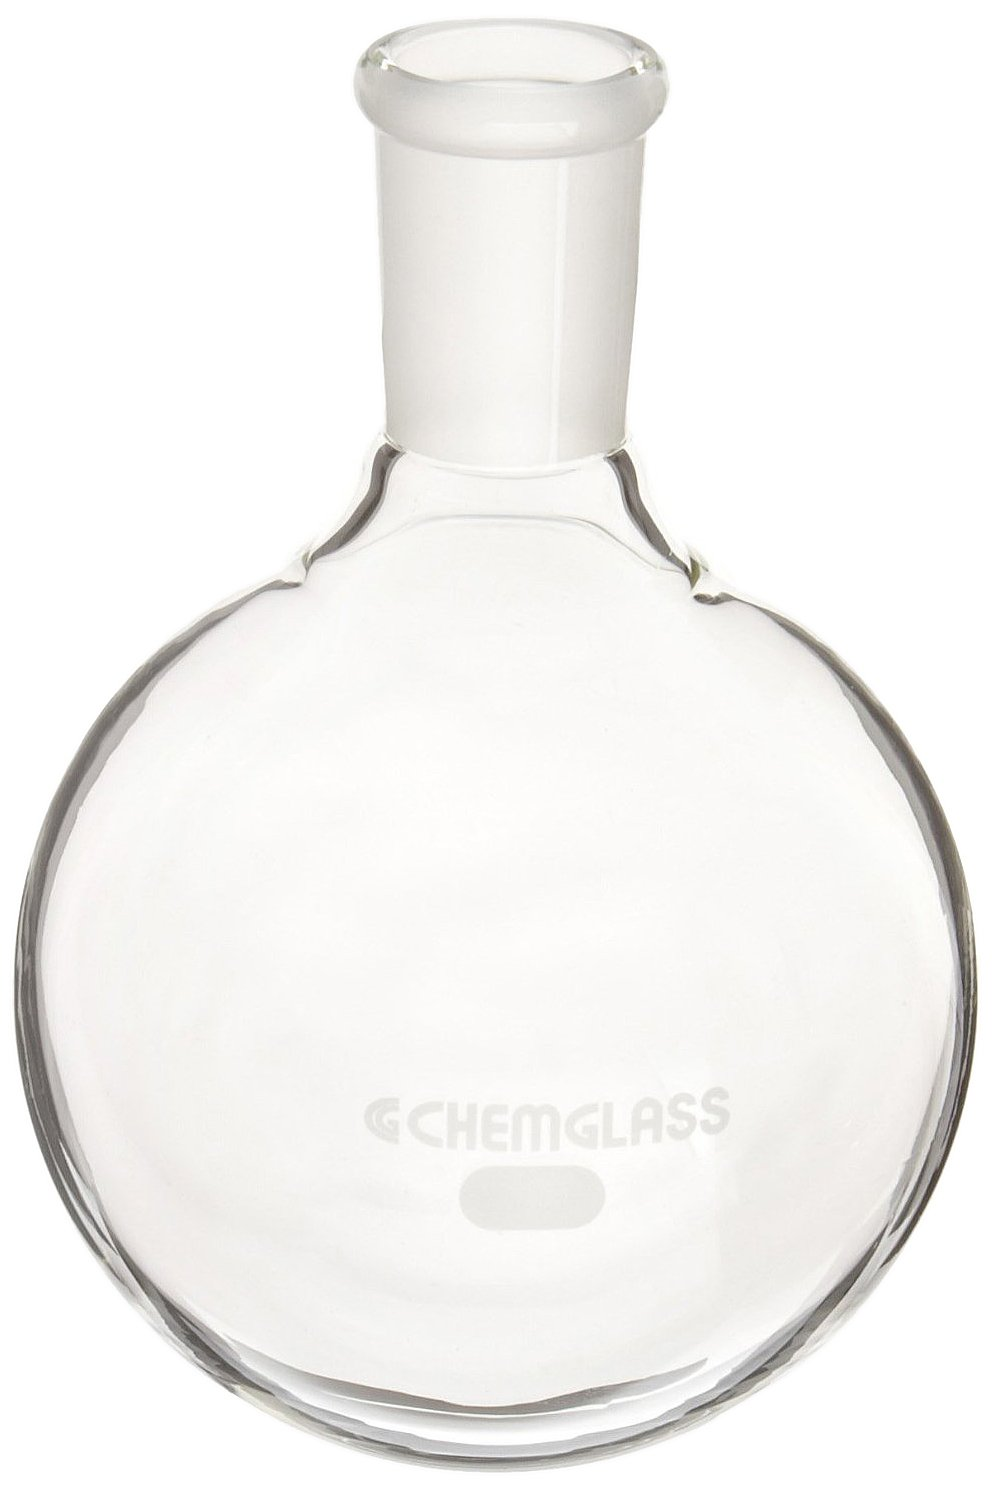 Chemglass CG-1506-18 Glass 250mL Heavy Wall Single Neck Round Bottom Flask, with 29/42 Standard Taper Outer Joint